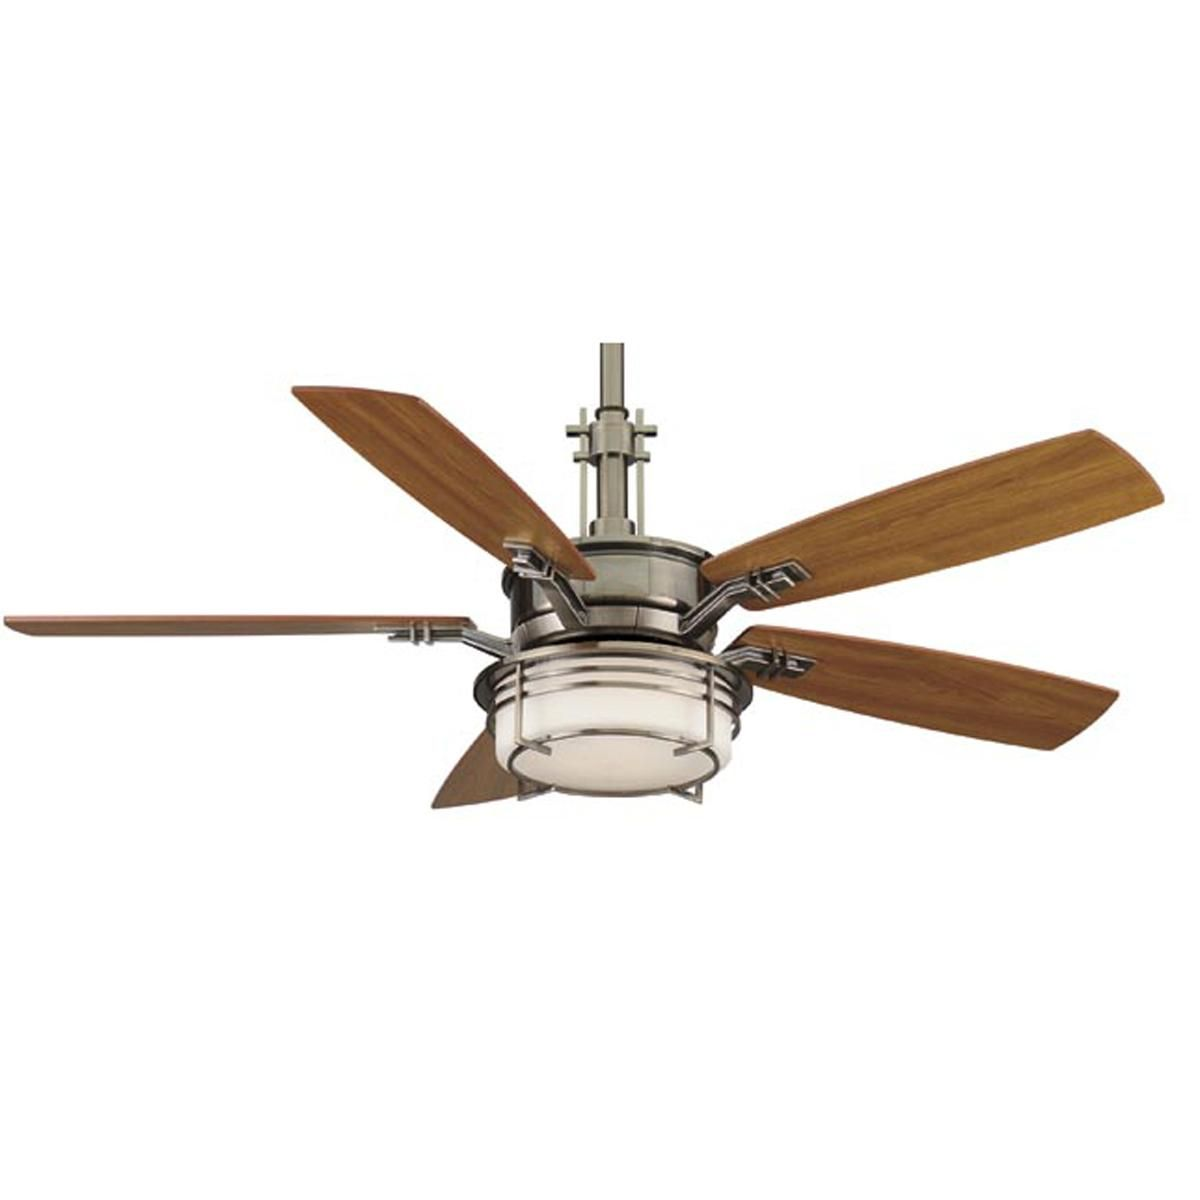 fan fans hunter tiffany ceiling fixtures outdoor craftsman lighting style ceilings mission